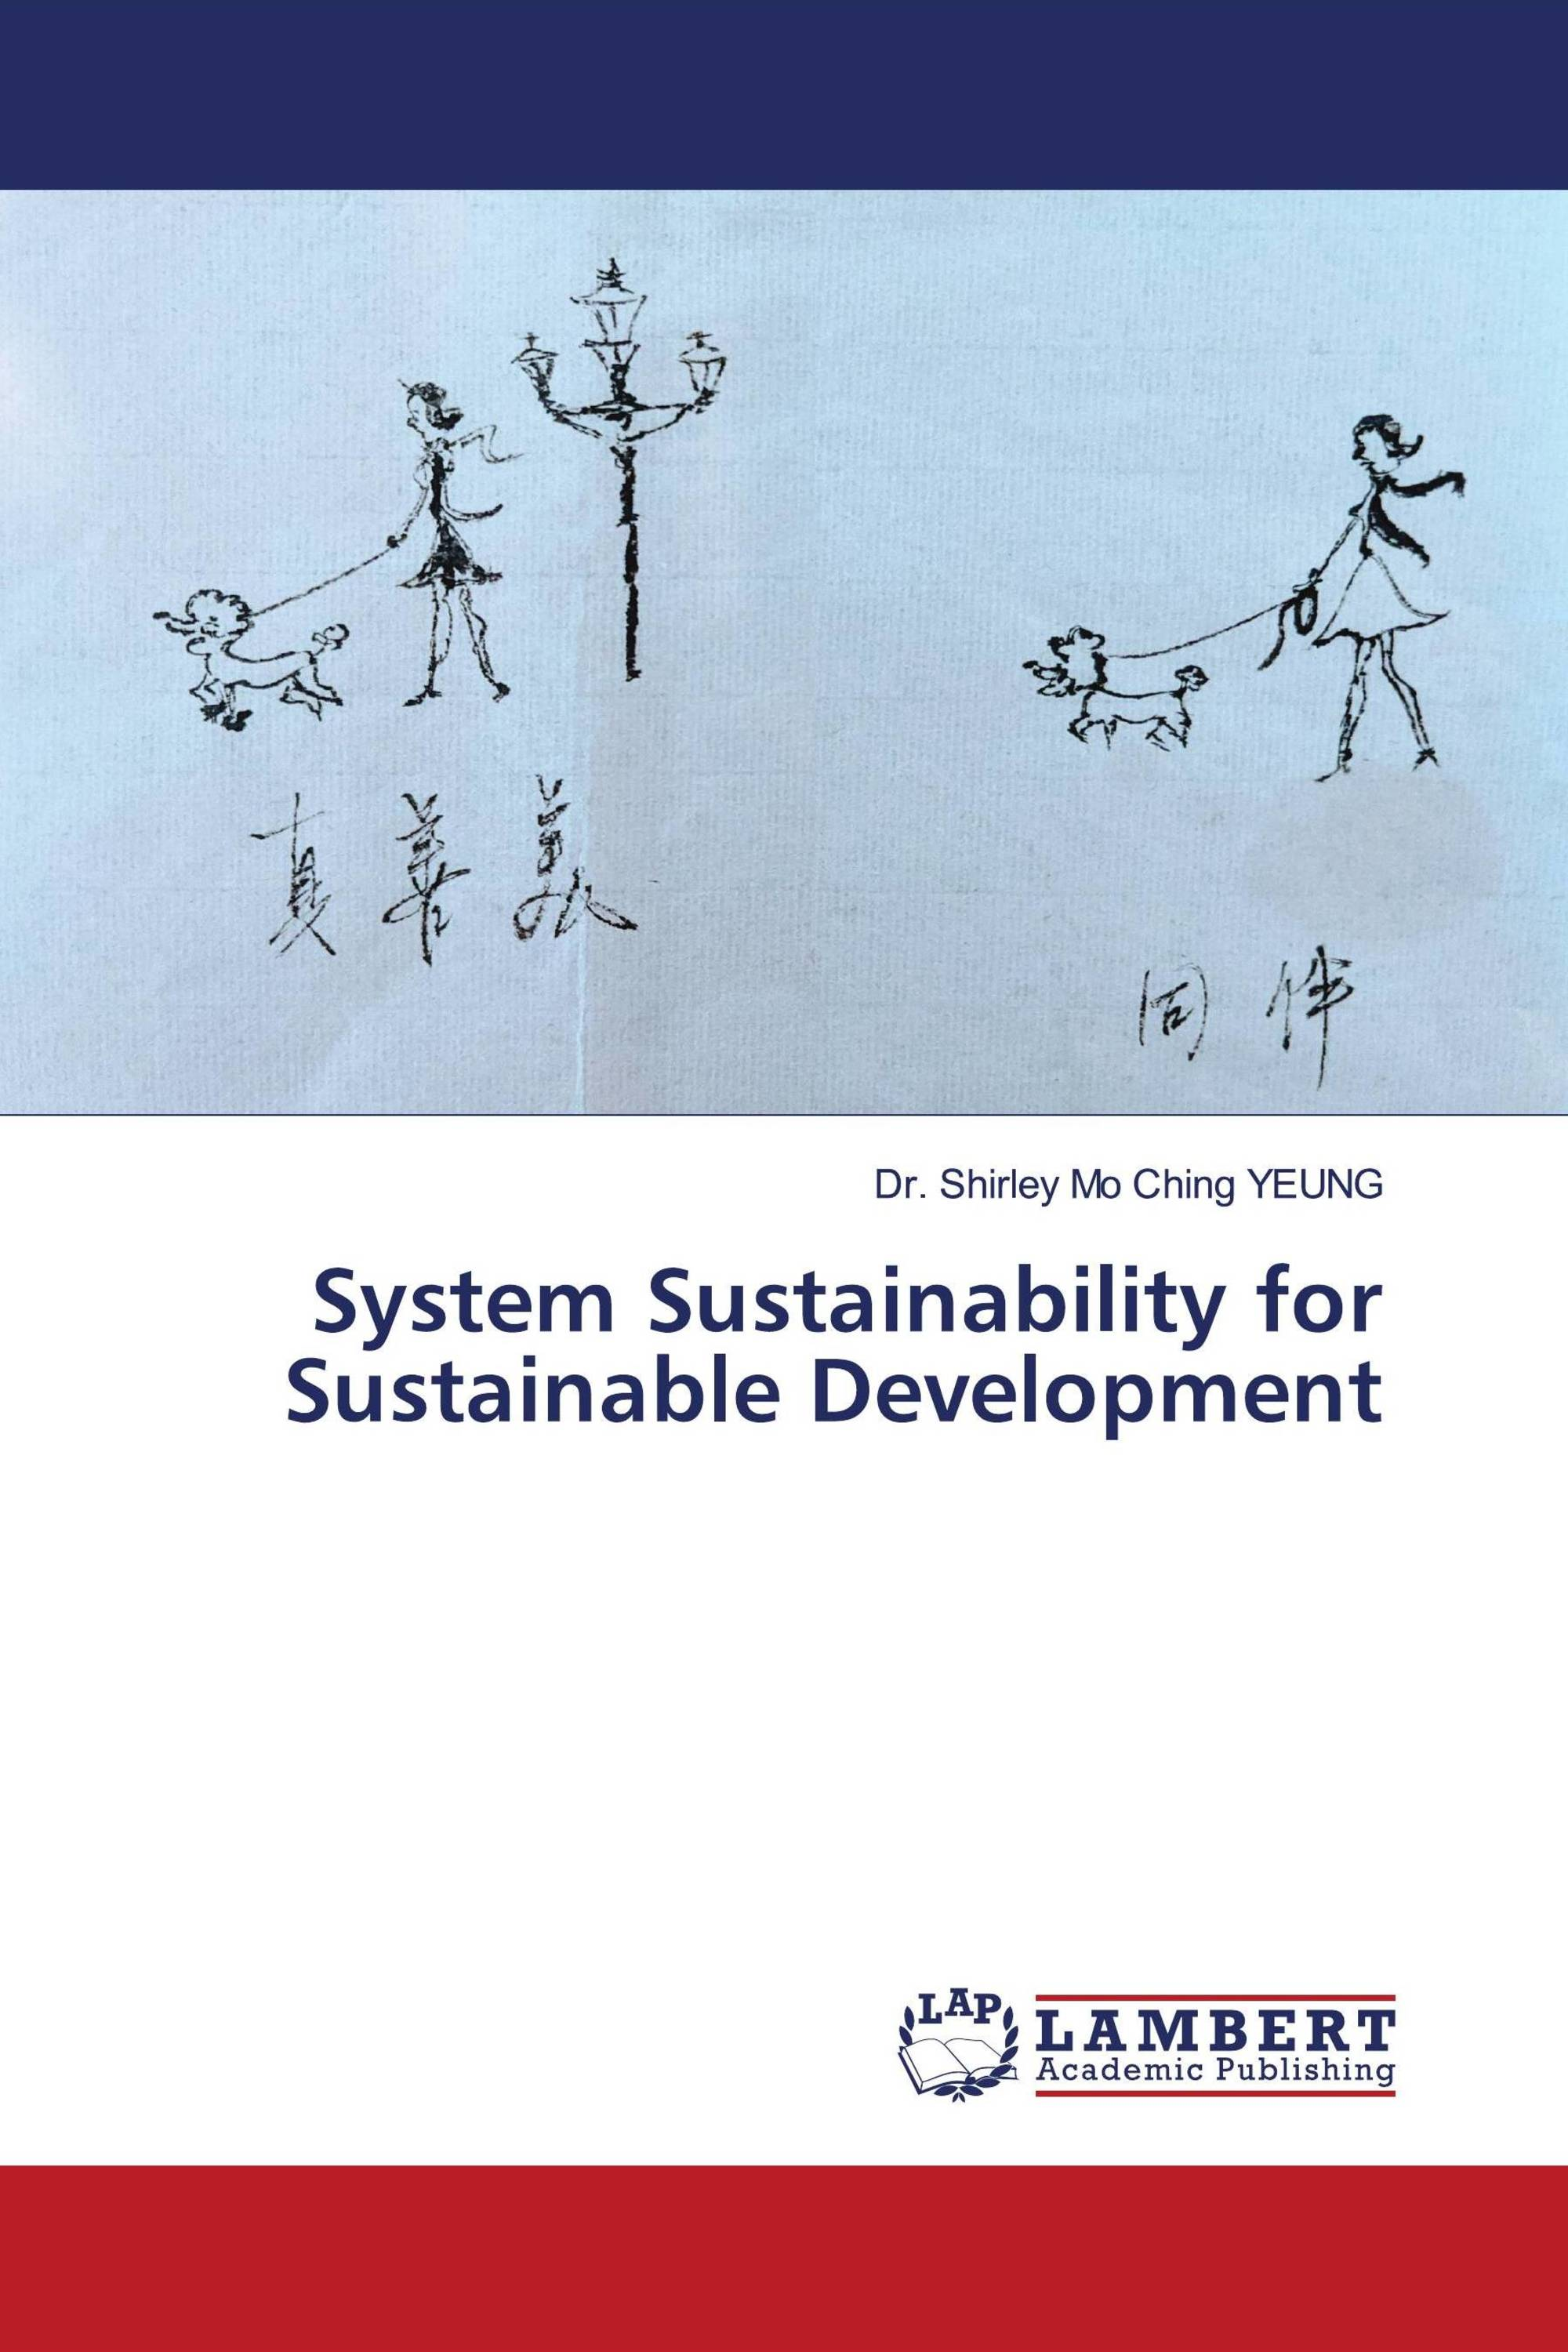 System Sustainability for Sustainable Development